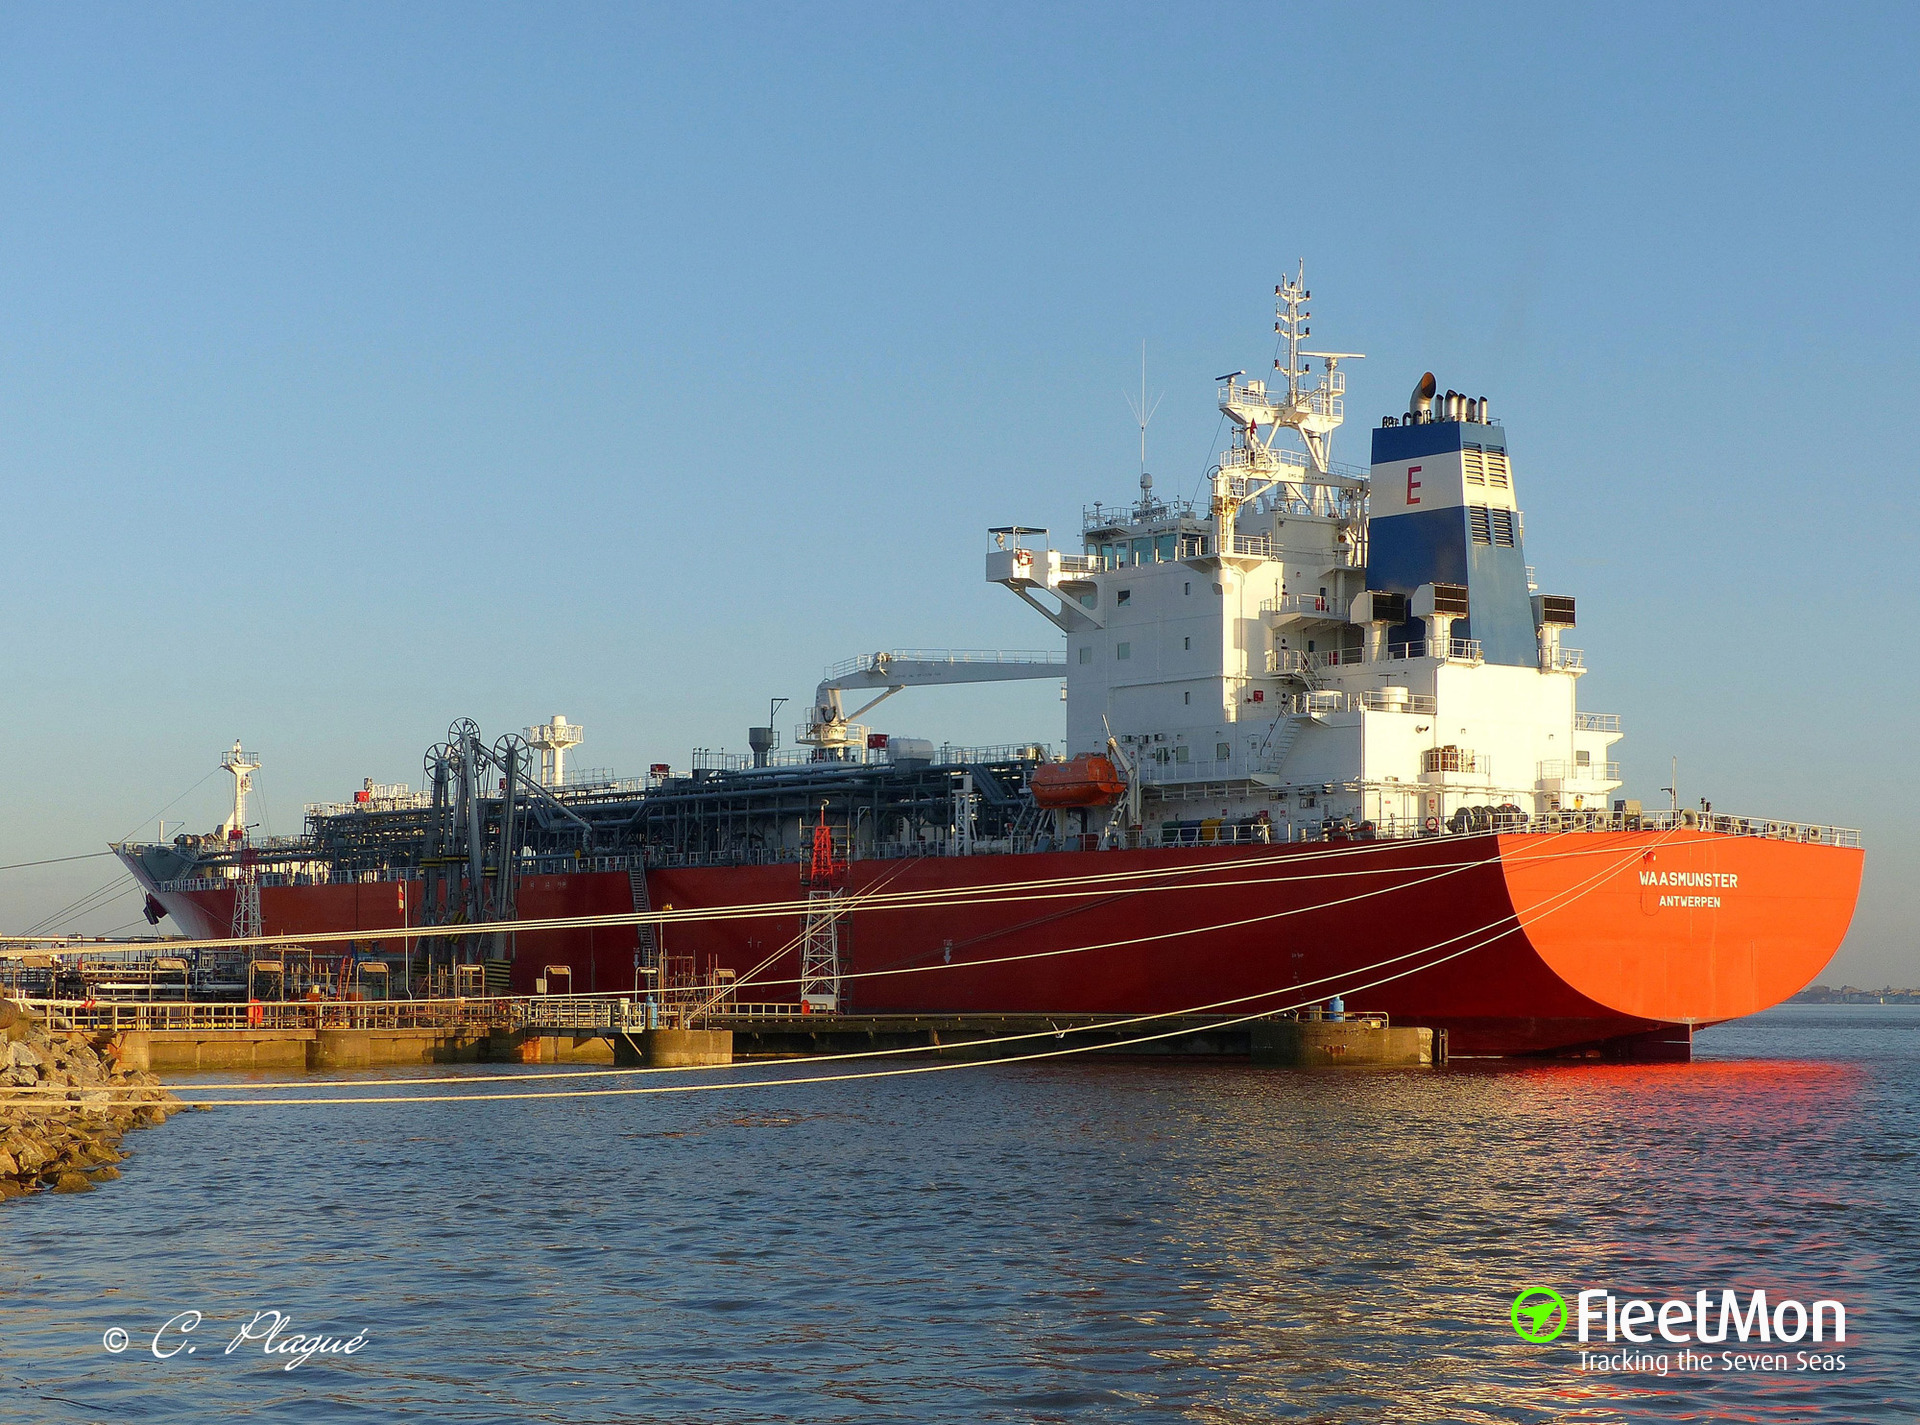 LPG tanker WAASMUNSTER breached in collision with fv GROS LOULOU, Le Havre